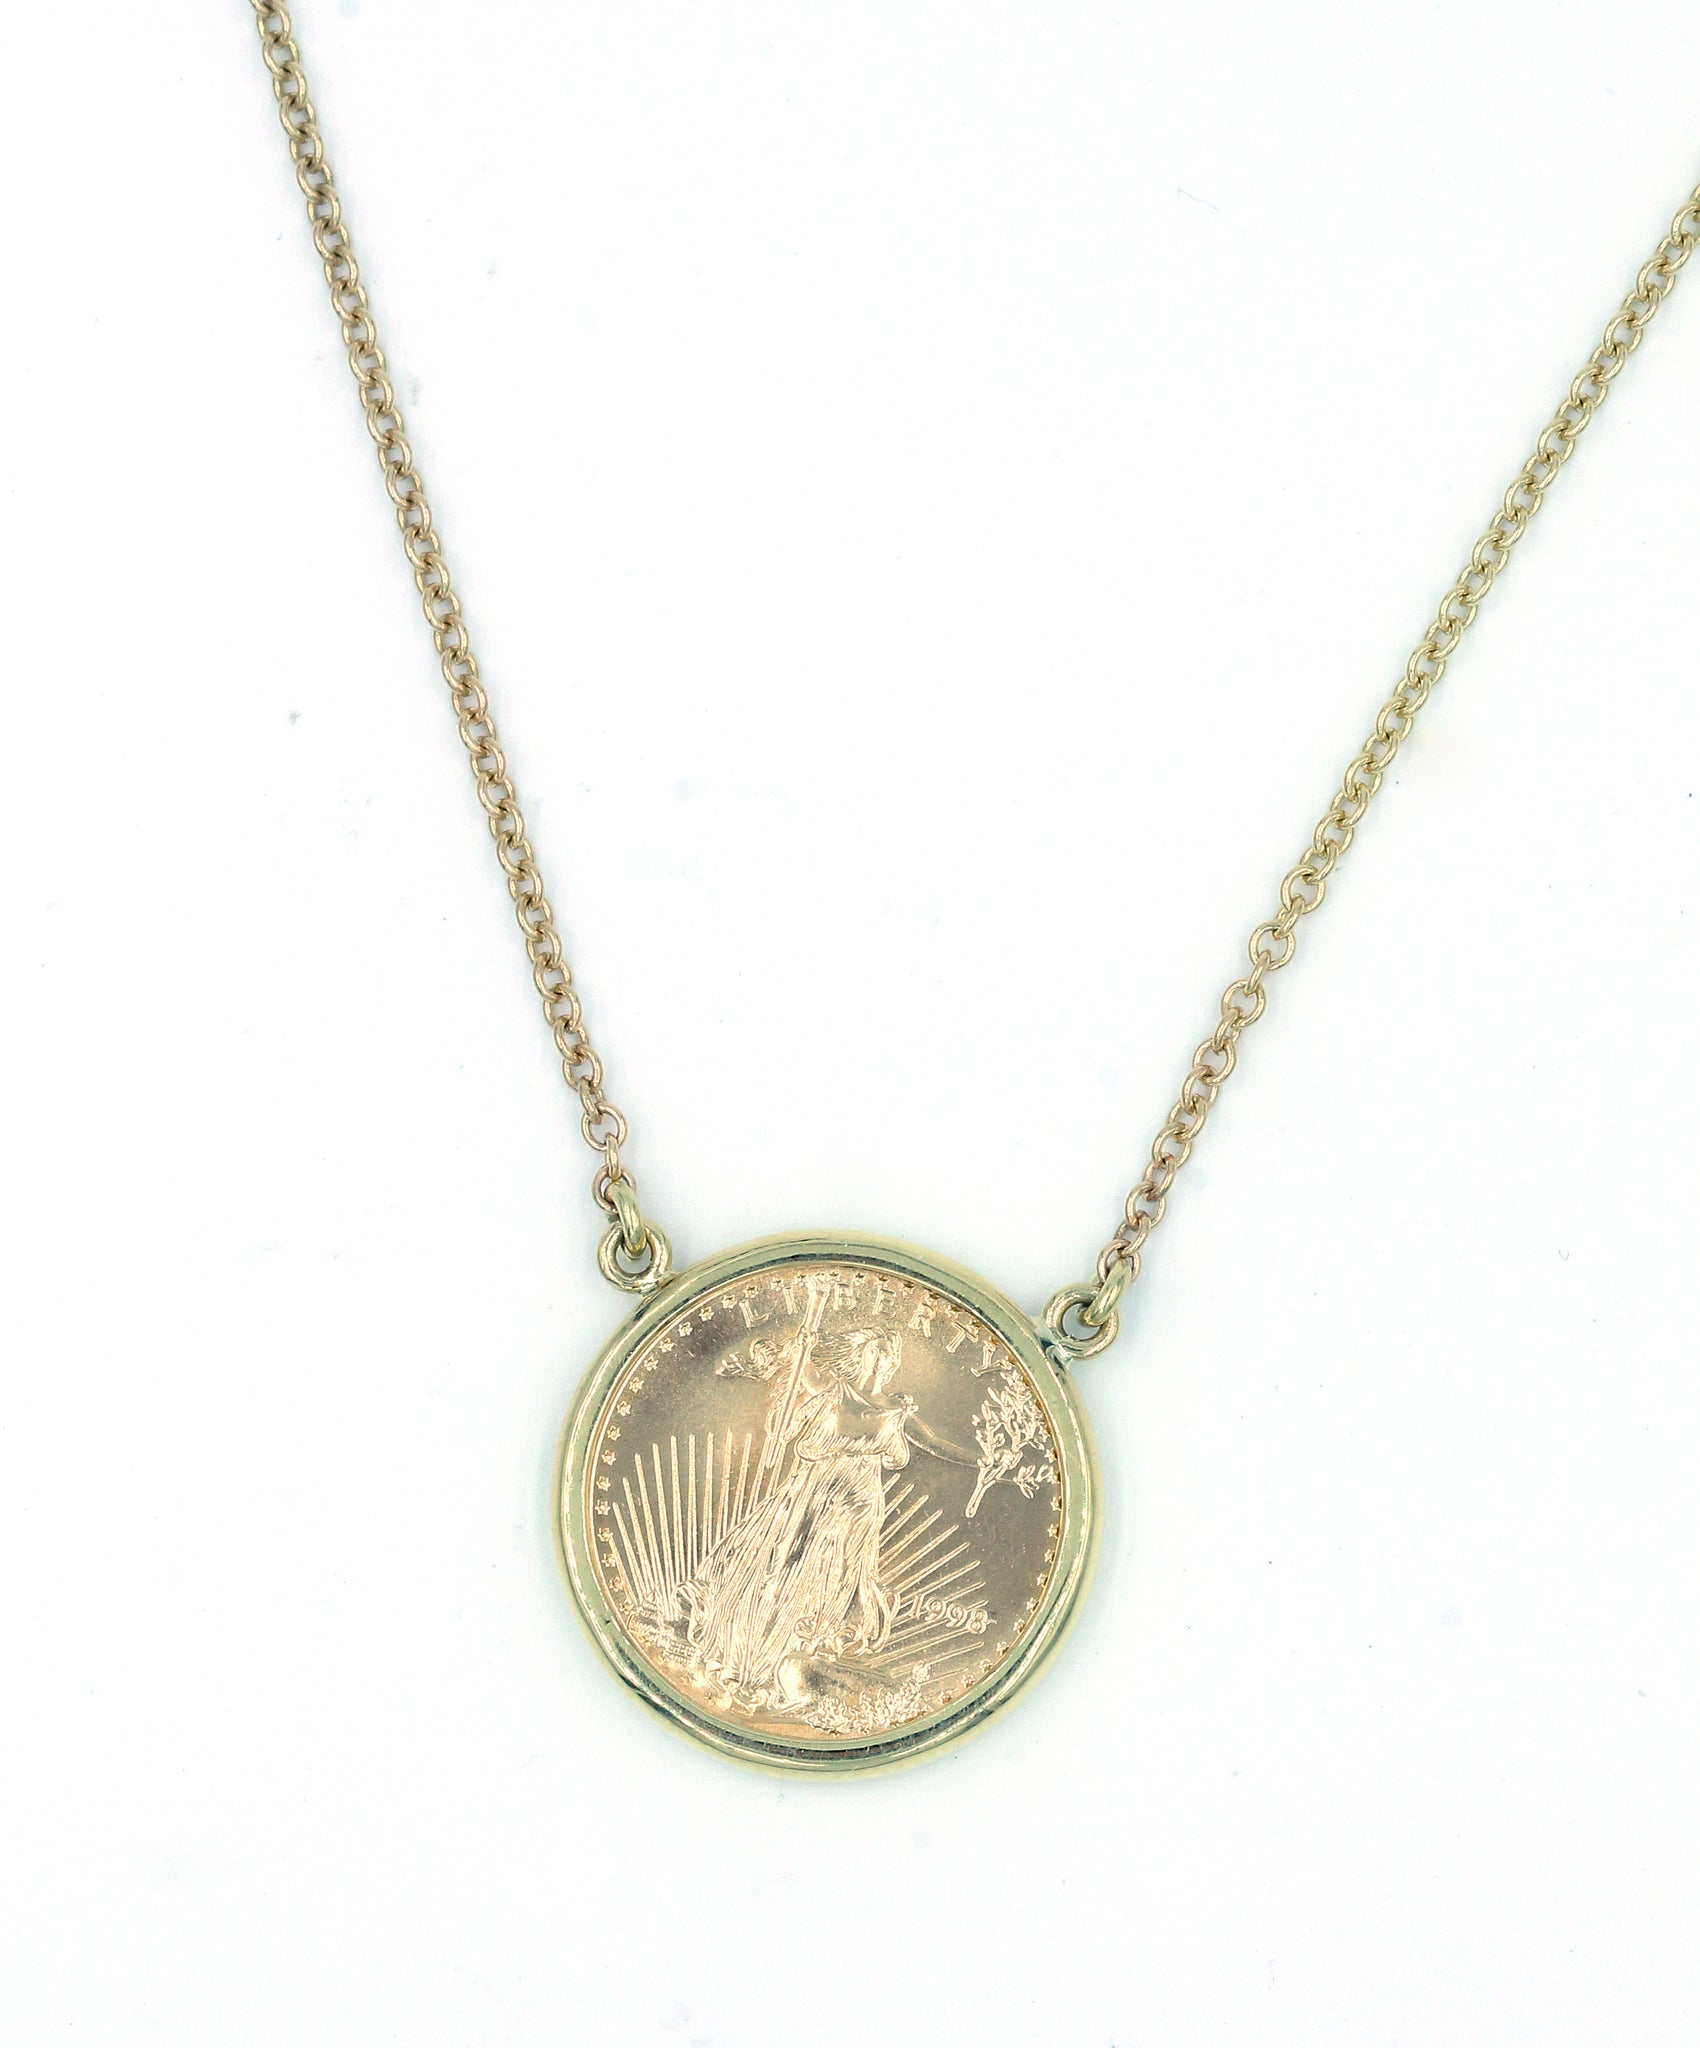 American Liberty Coin Pendant, SOLD